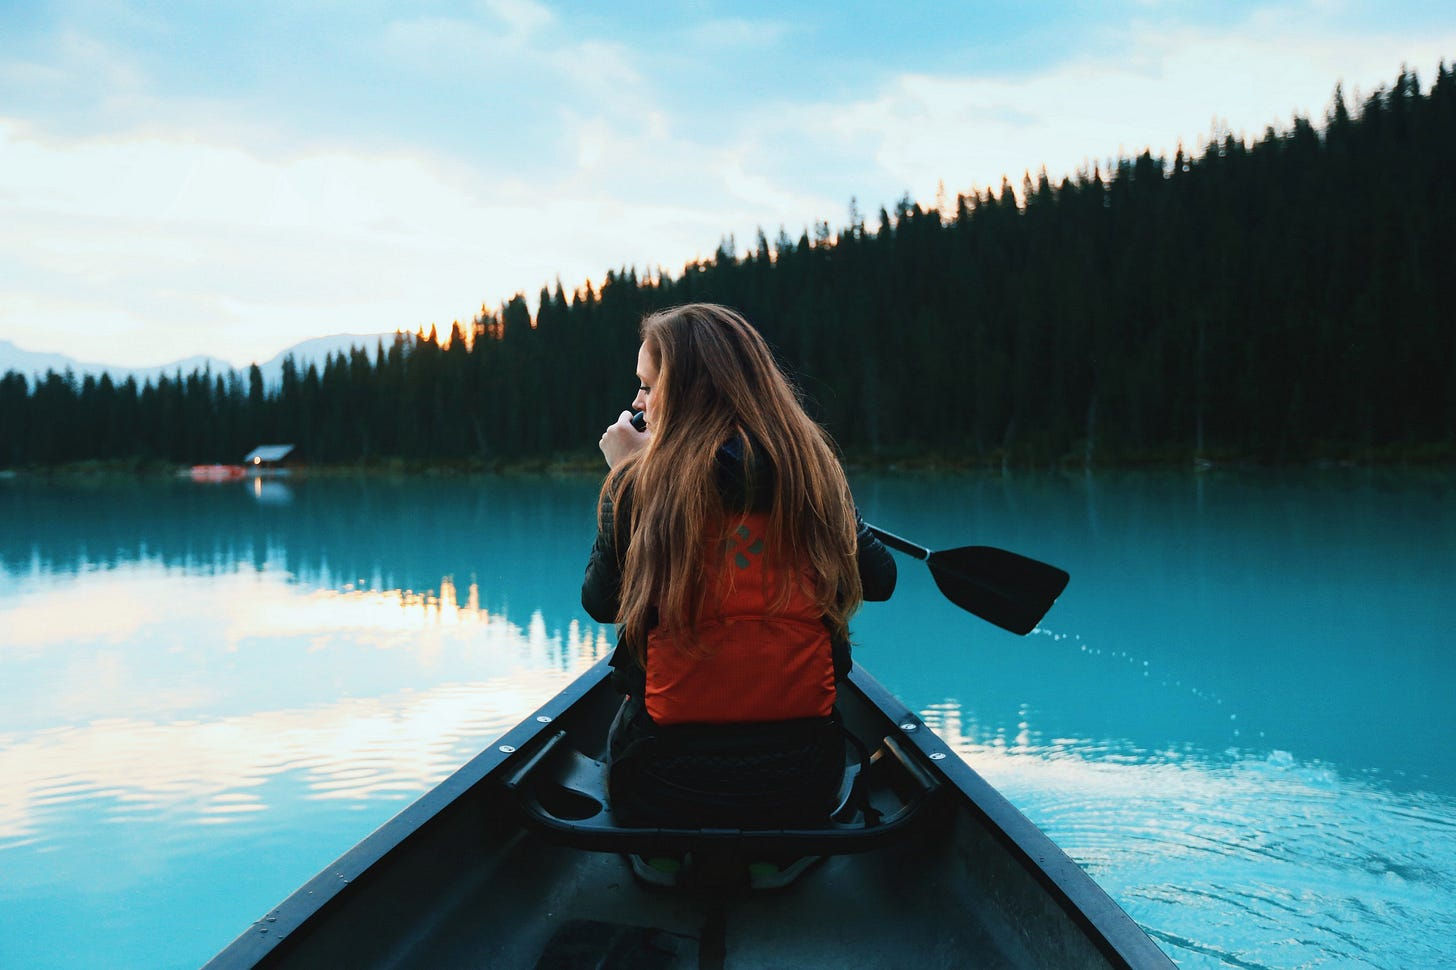 image of a girl in a canoe on a still lake for article by Larry G. Maguire